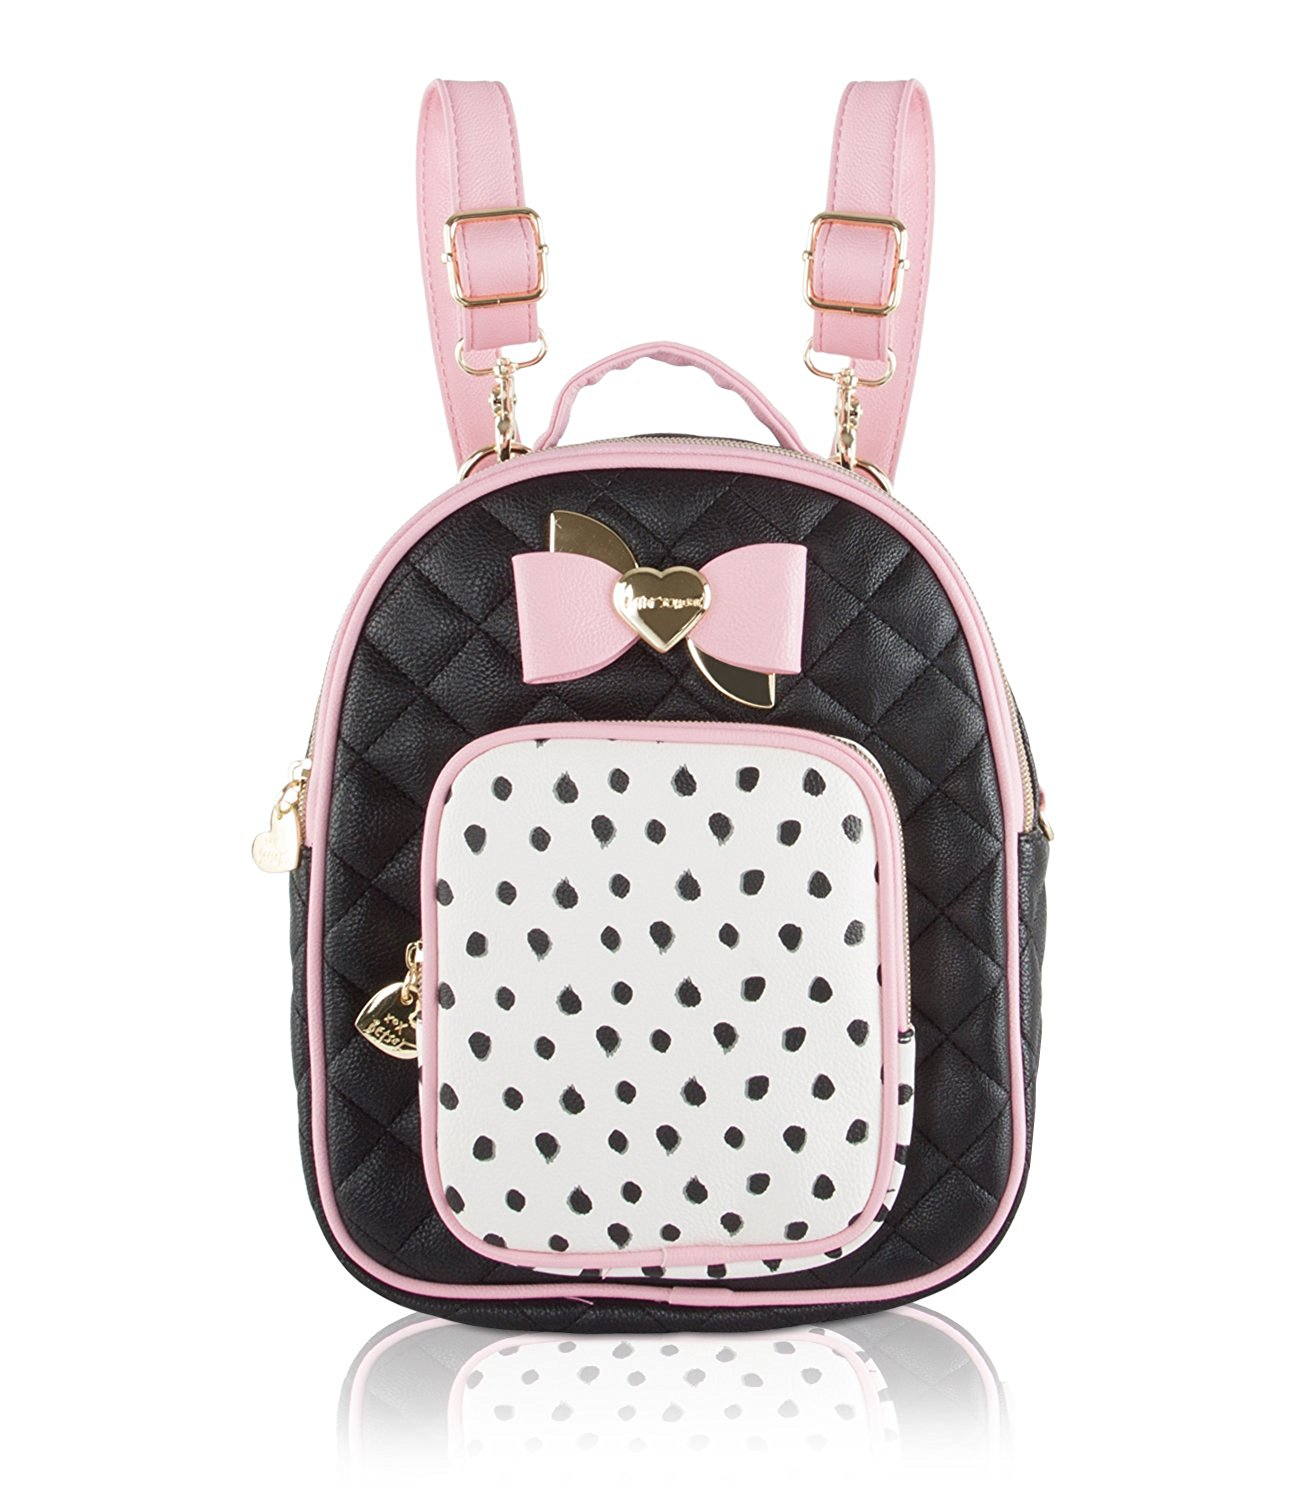 42a033681f1 Cheap Betsey Johnson Backpack, find Betsey Johnson Backpack deals on ...